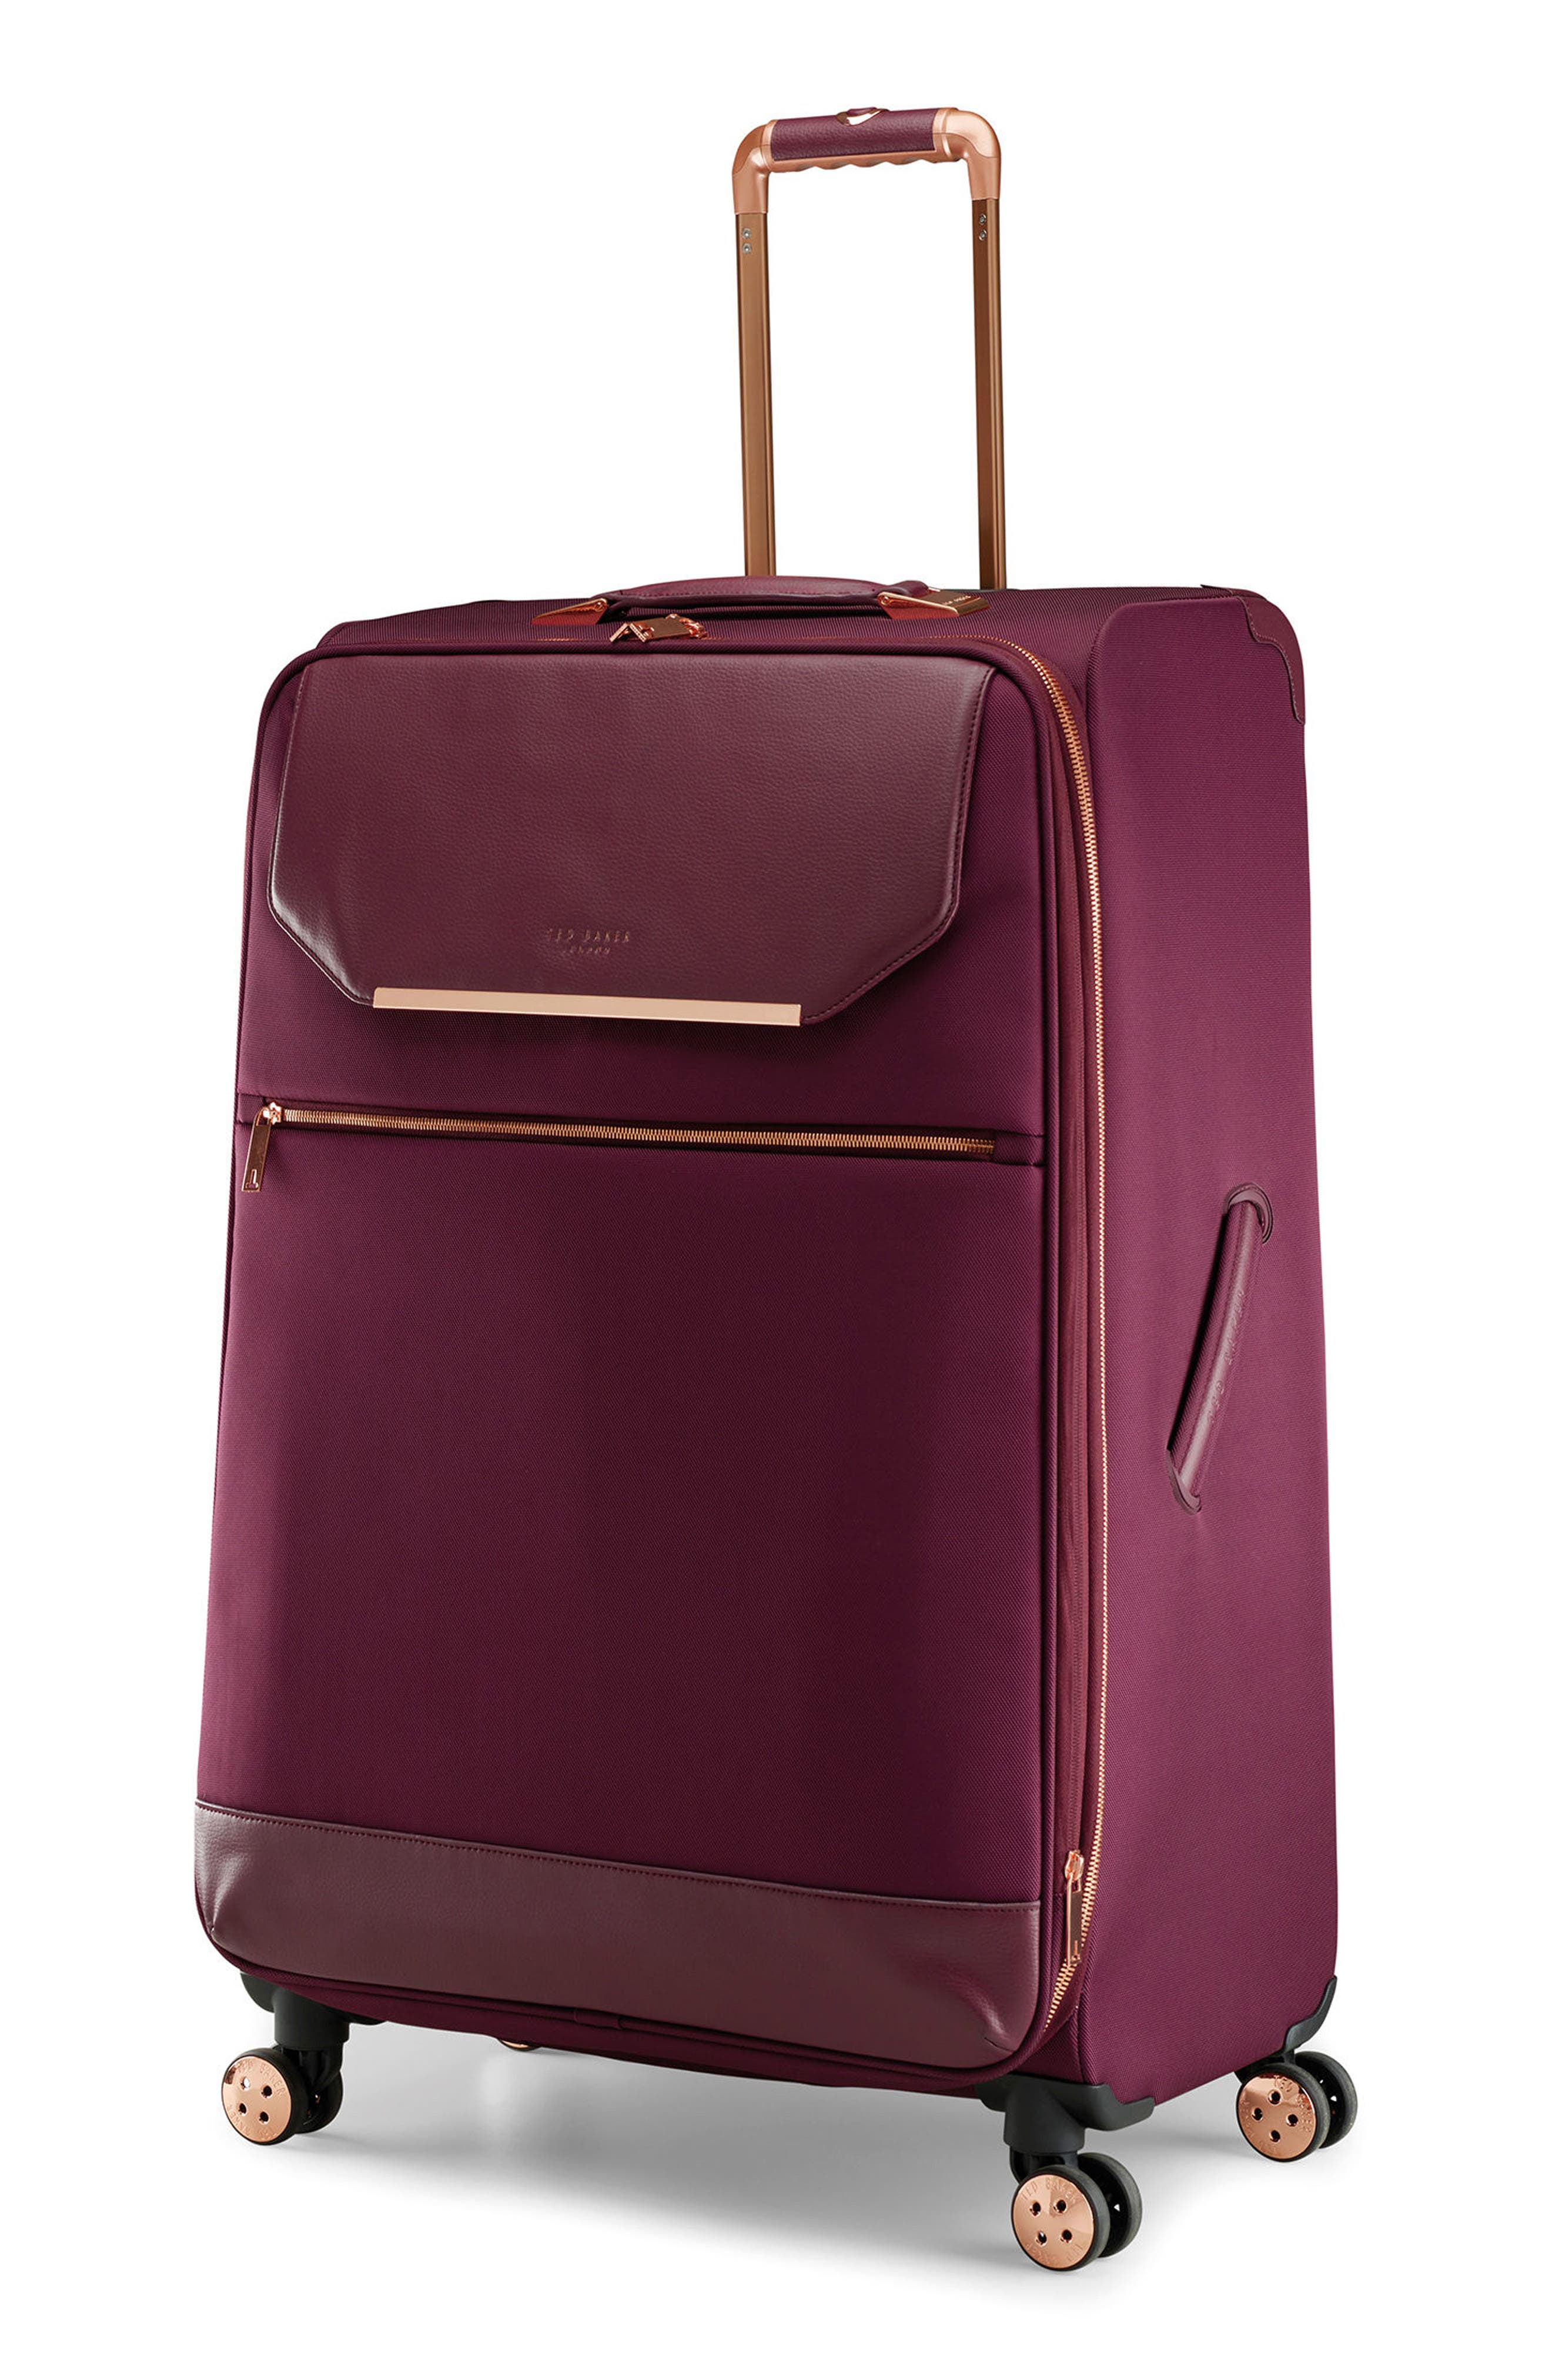 33-Inch Spinner Trolley Packing Case,                             Alternate thumbnail 3, color,                             BURGUNDY